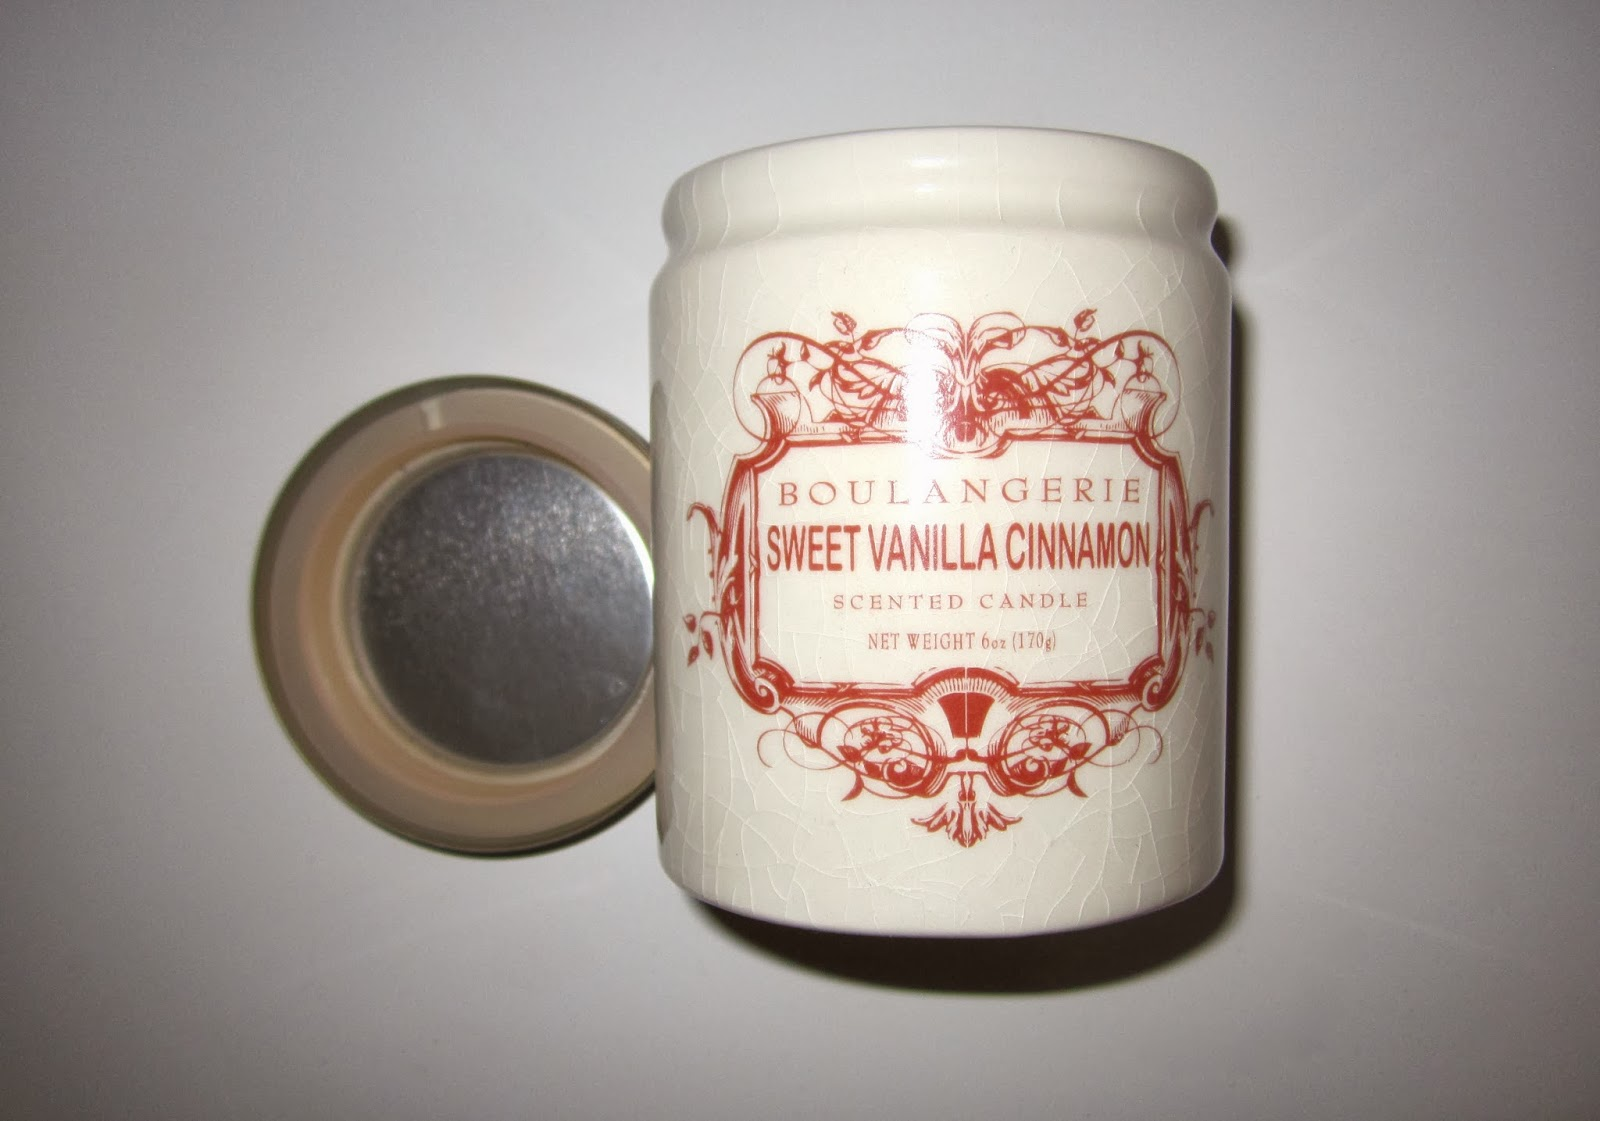 It Is The Illume Boulangerie Sweet Vanilla Cinnamon Scented Candle And Costs 14